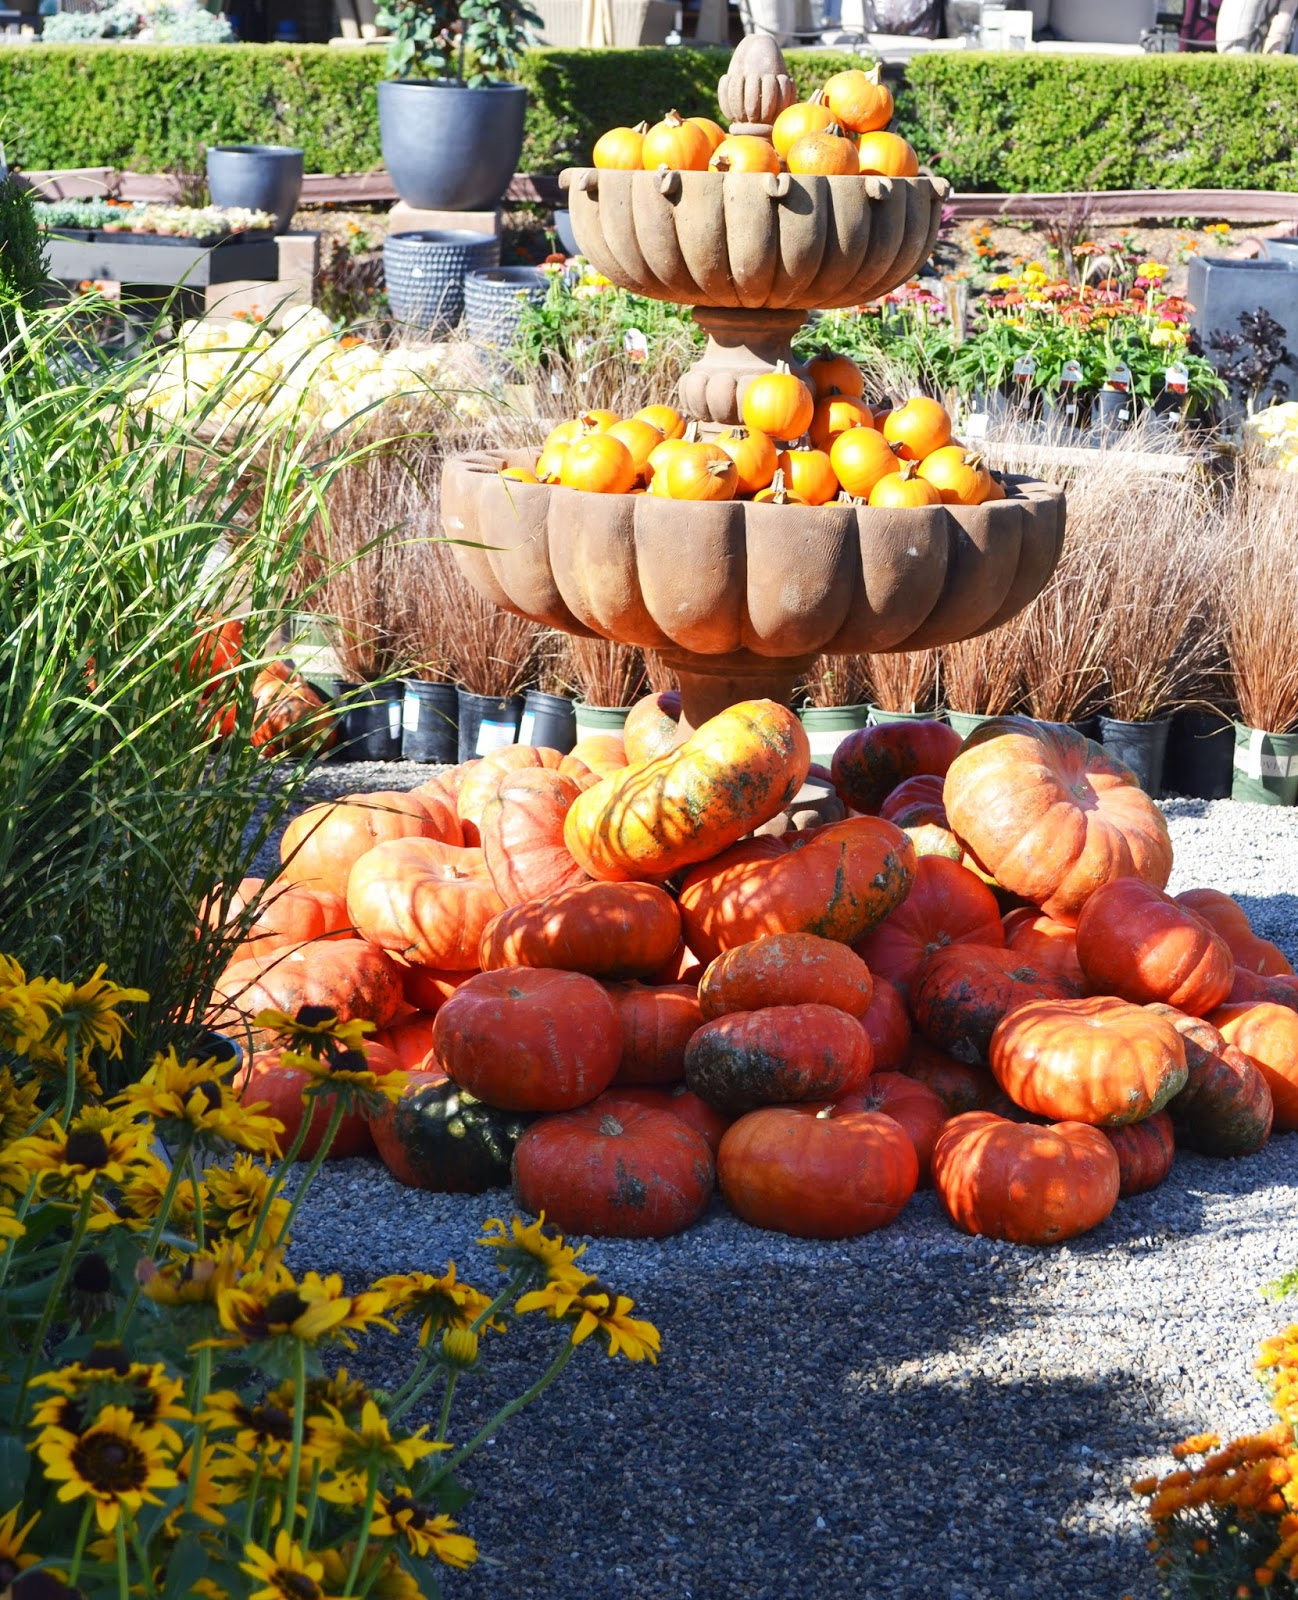 Welcome. I Am So Happy That You Stopped By. I Am Going To Rogeru0027s Gardens  In Newport Beach To Look For Pumpkins And I Would Love To Take You With Me.